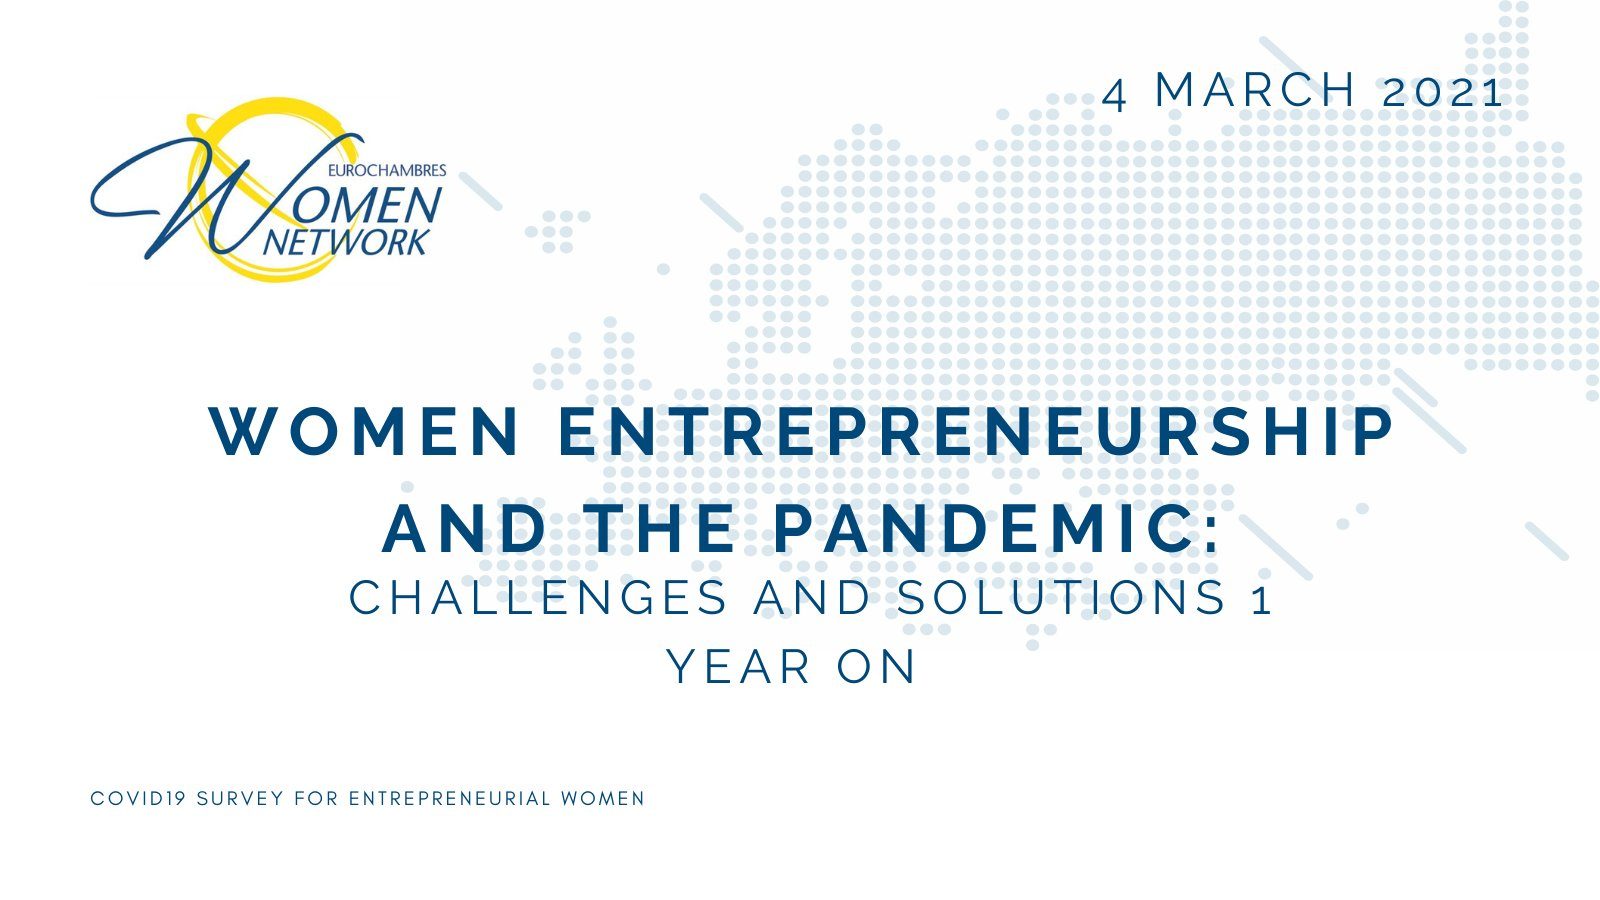 https://www.eurochambres.eu/event/women-entrepreneurship-and-the-pandemic-challenges-and-solutions-1-year-on/